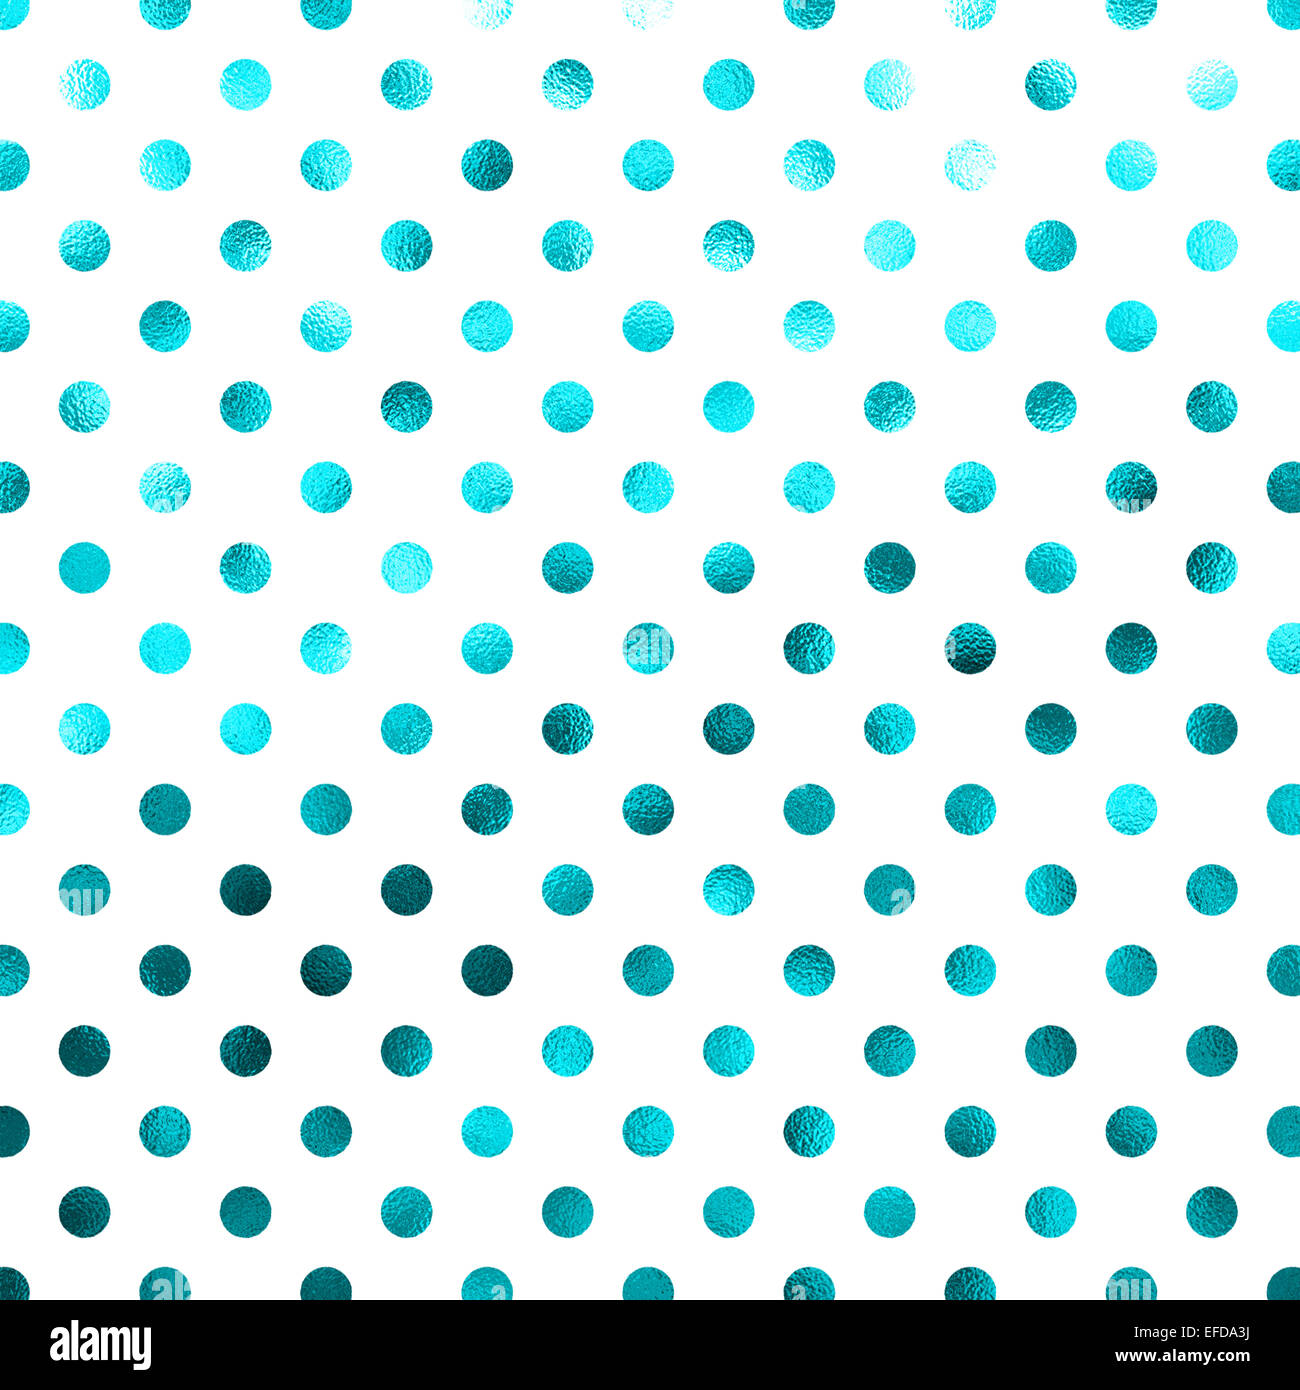 The Texture Of Teal And Turquoise: Blue Teal Turquoise White Polka Dot Pattern Swiss Dots